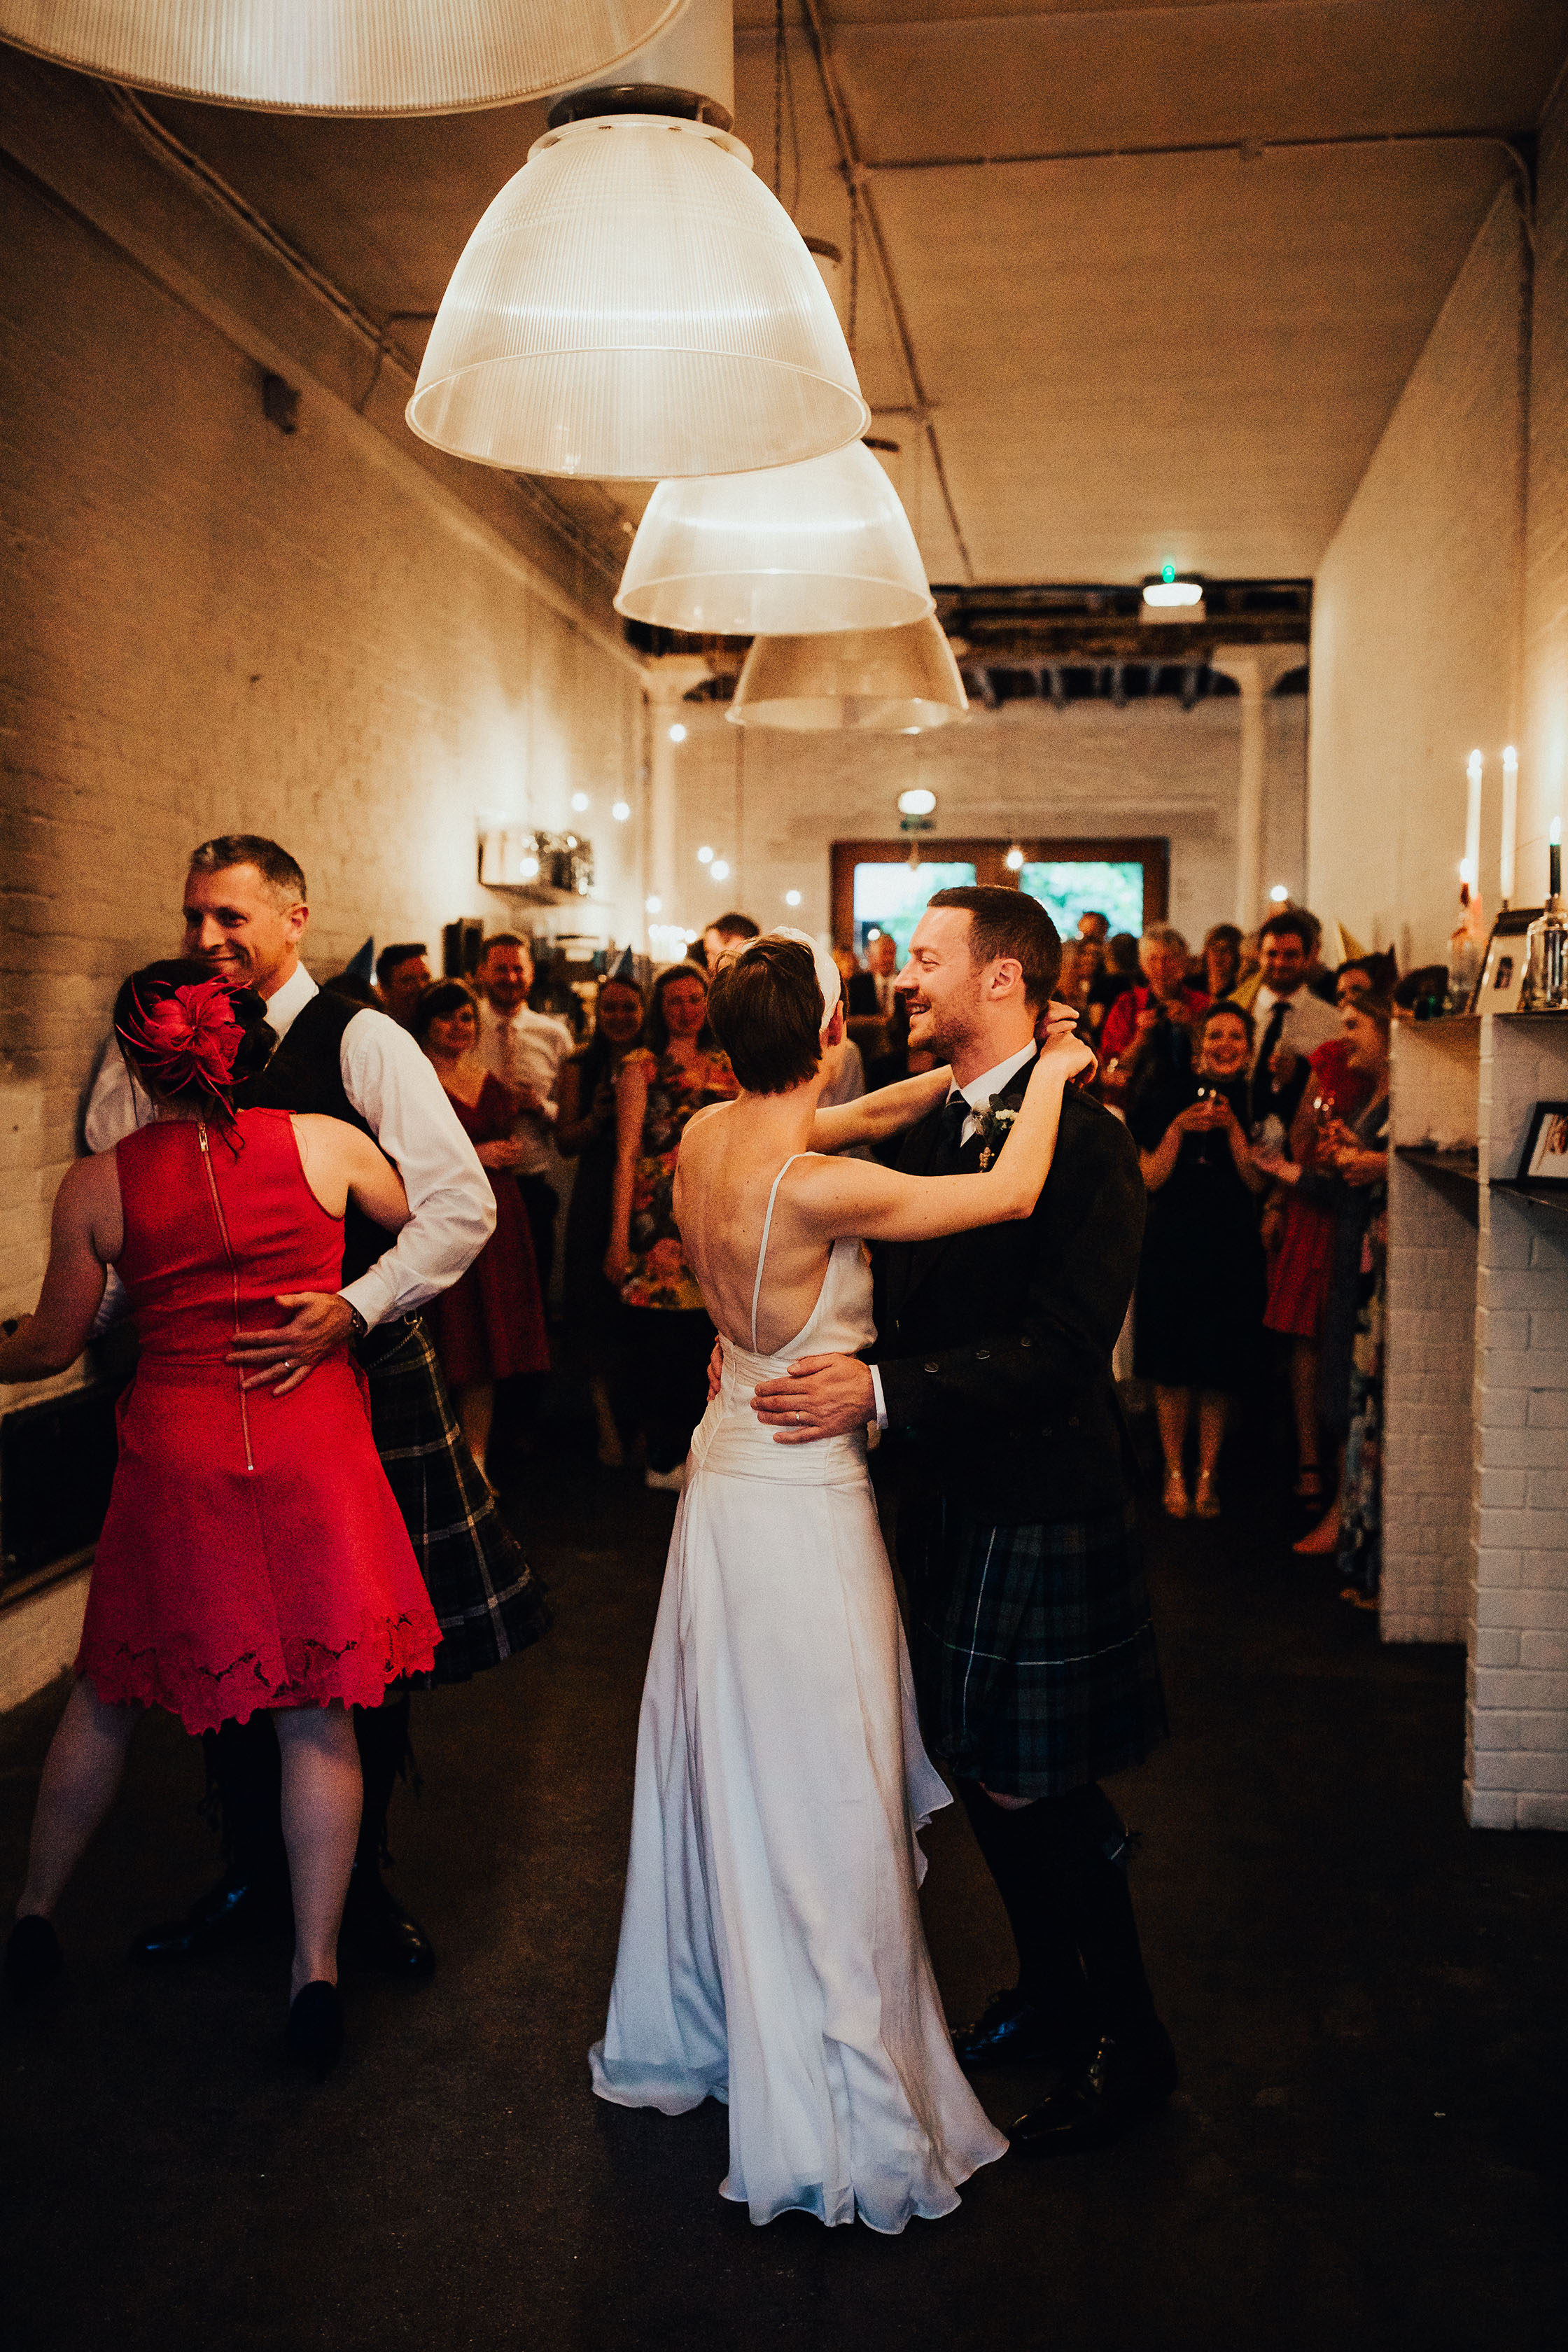 TIMBERYARD_EDINBURGH_WEDDING_PJ_PHILLIPS_PHOTOGRAPHY_200.jpg